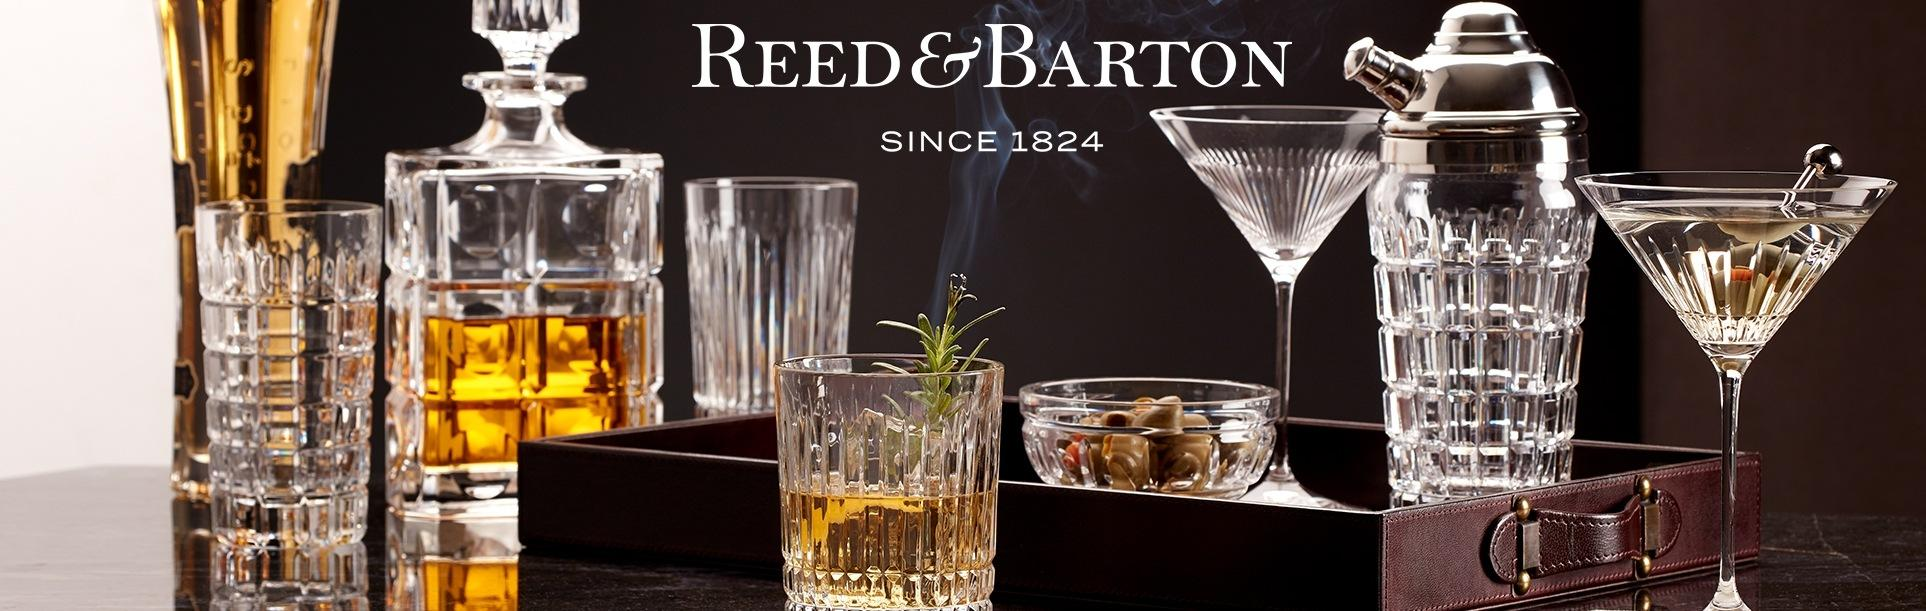 Reed & Barton lifestyle products slide 4